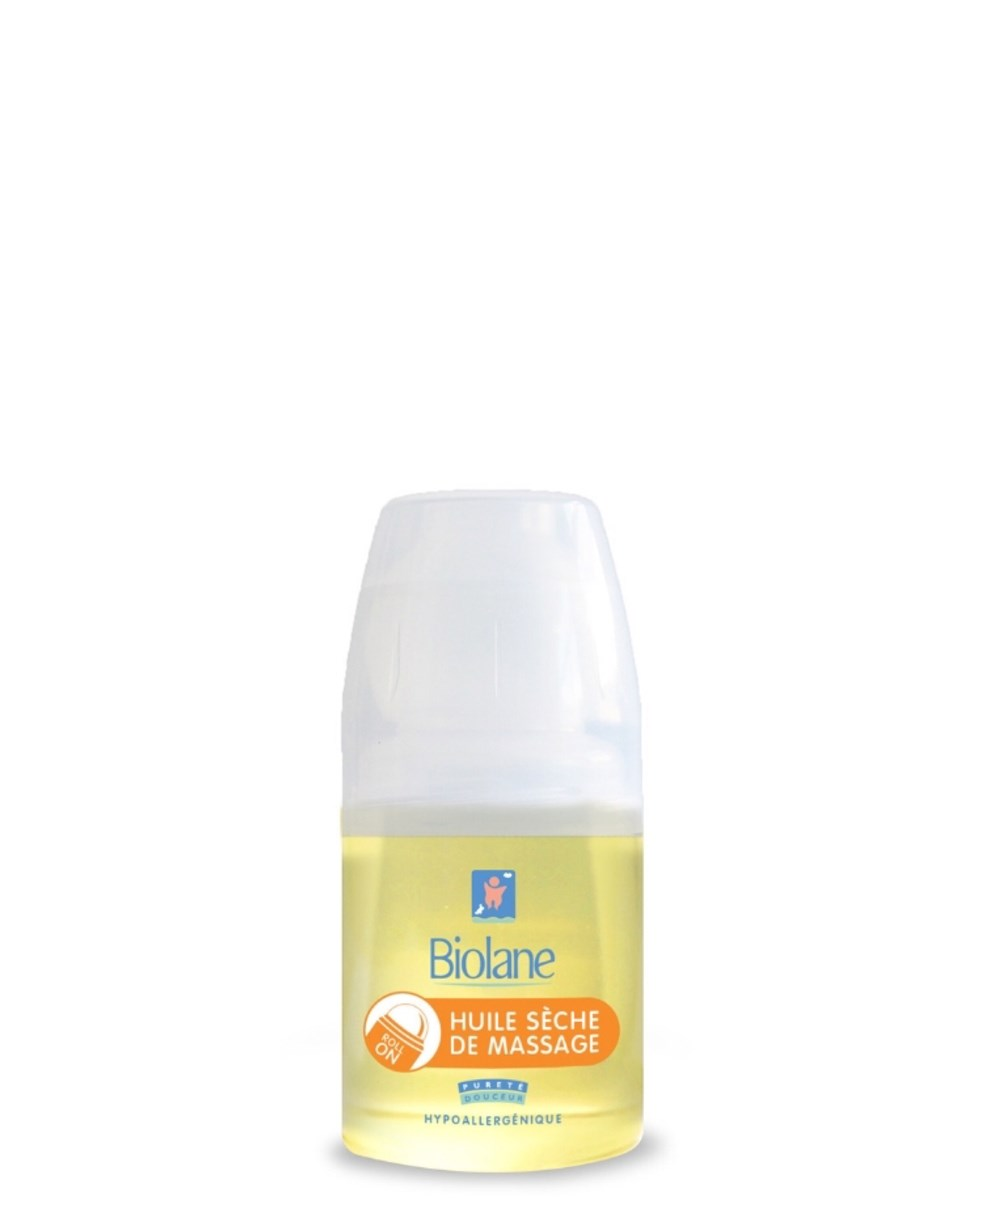 Biolane Massage Oil 60mL